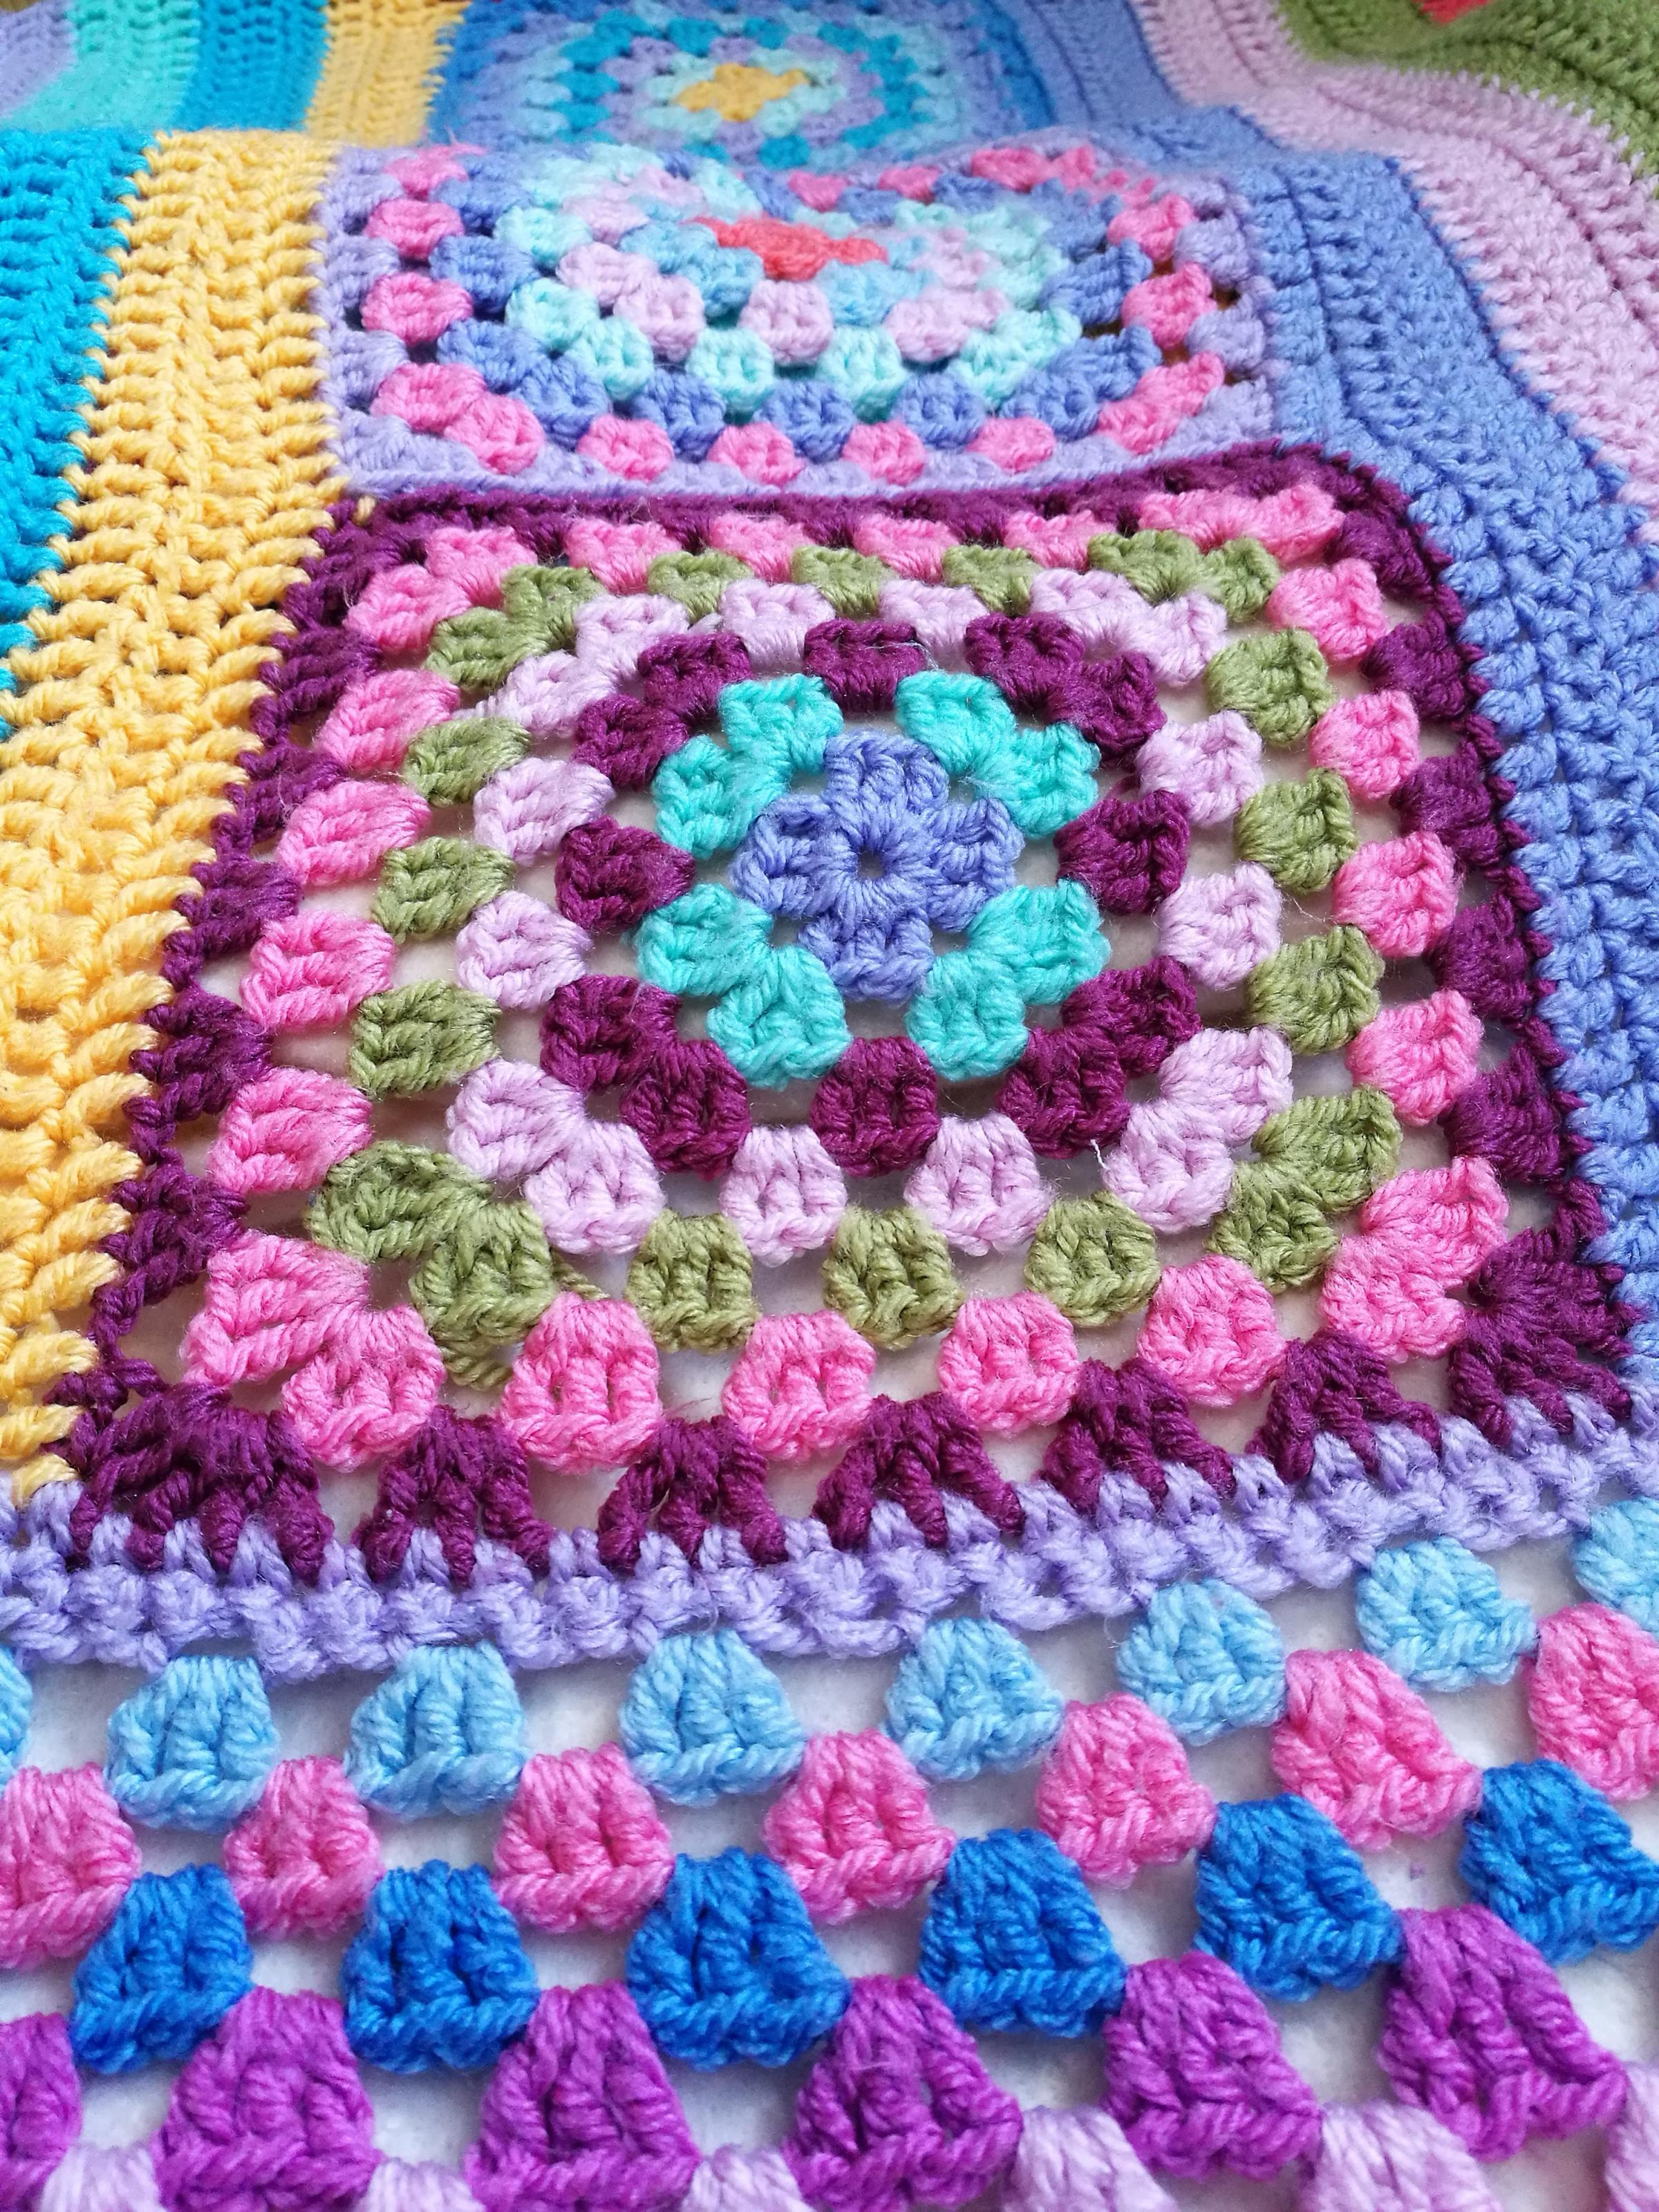 Get your Granny on! Crochet for Beginners with Jacqui Harding